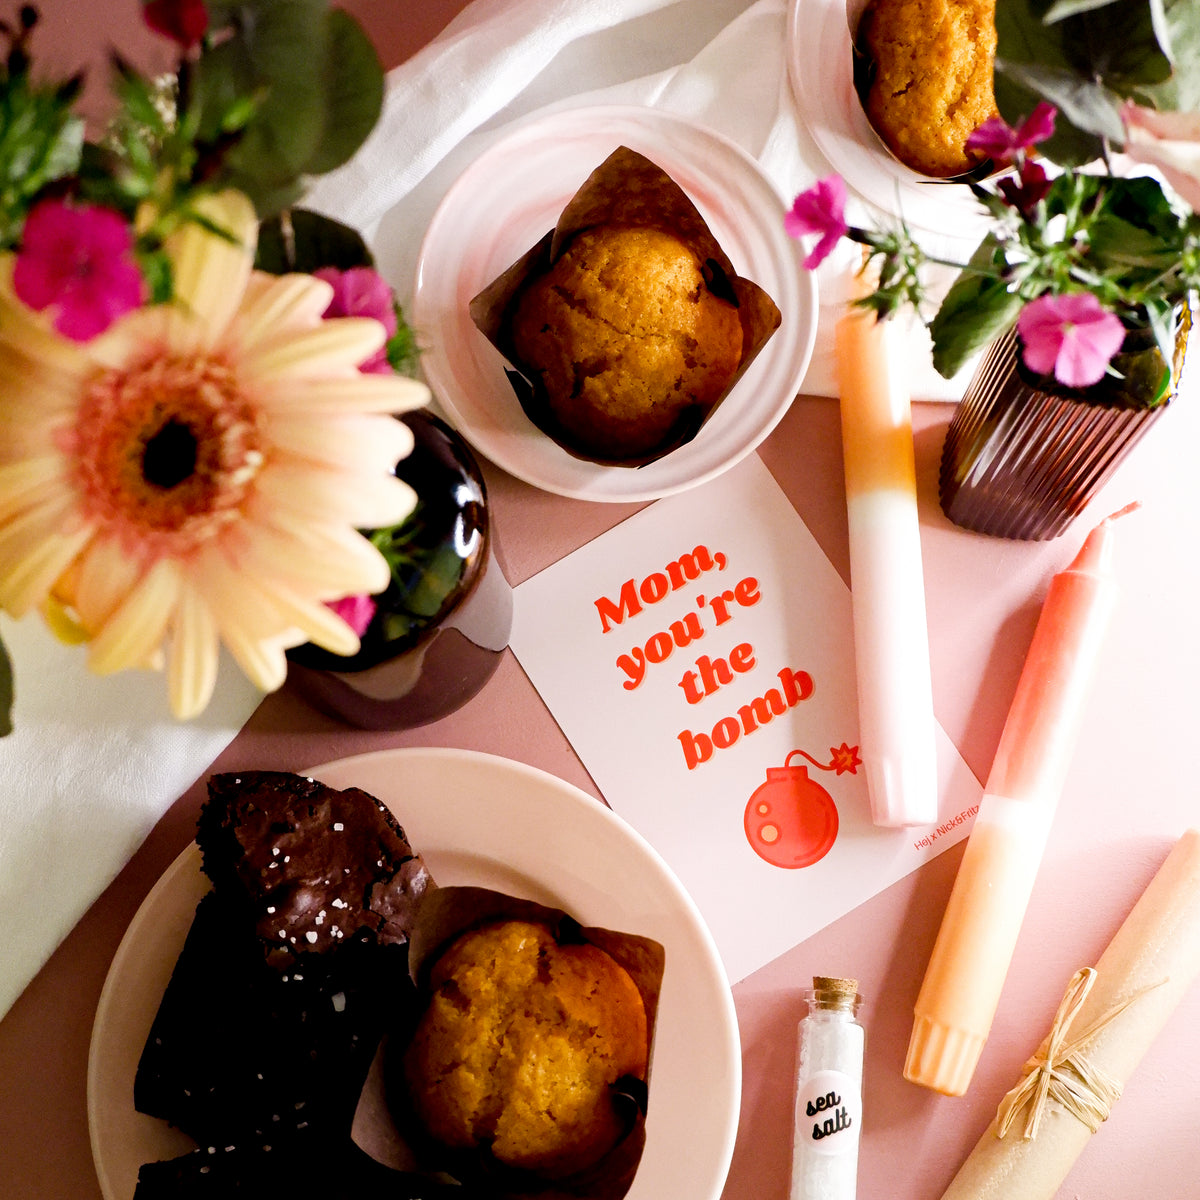 Overhead photo of a carrot muffin on a pink plate, 2 flower vases, 2 dip-dyed candles, and a mother's day card